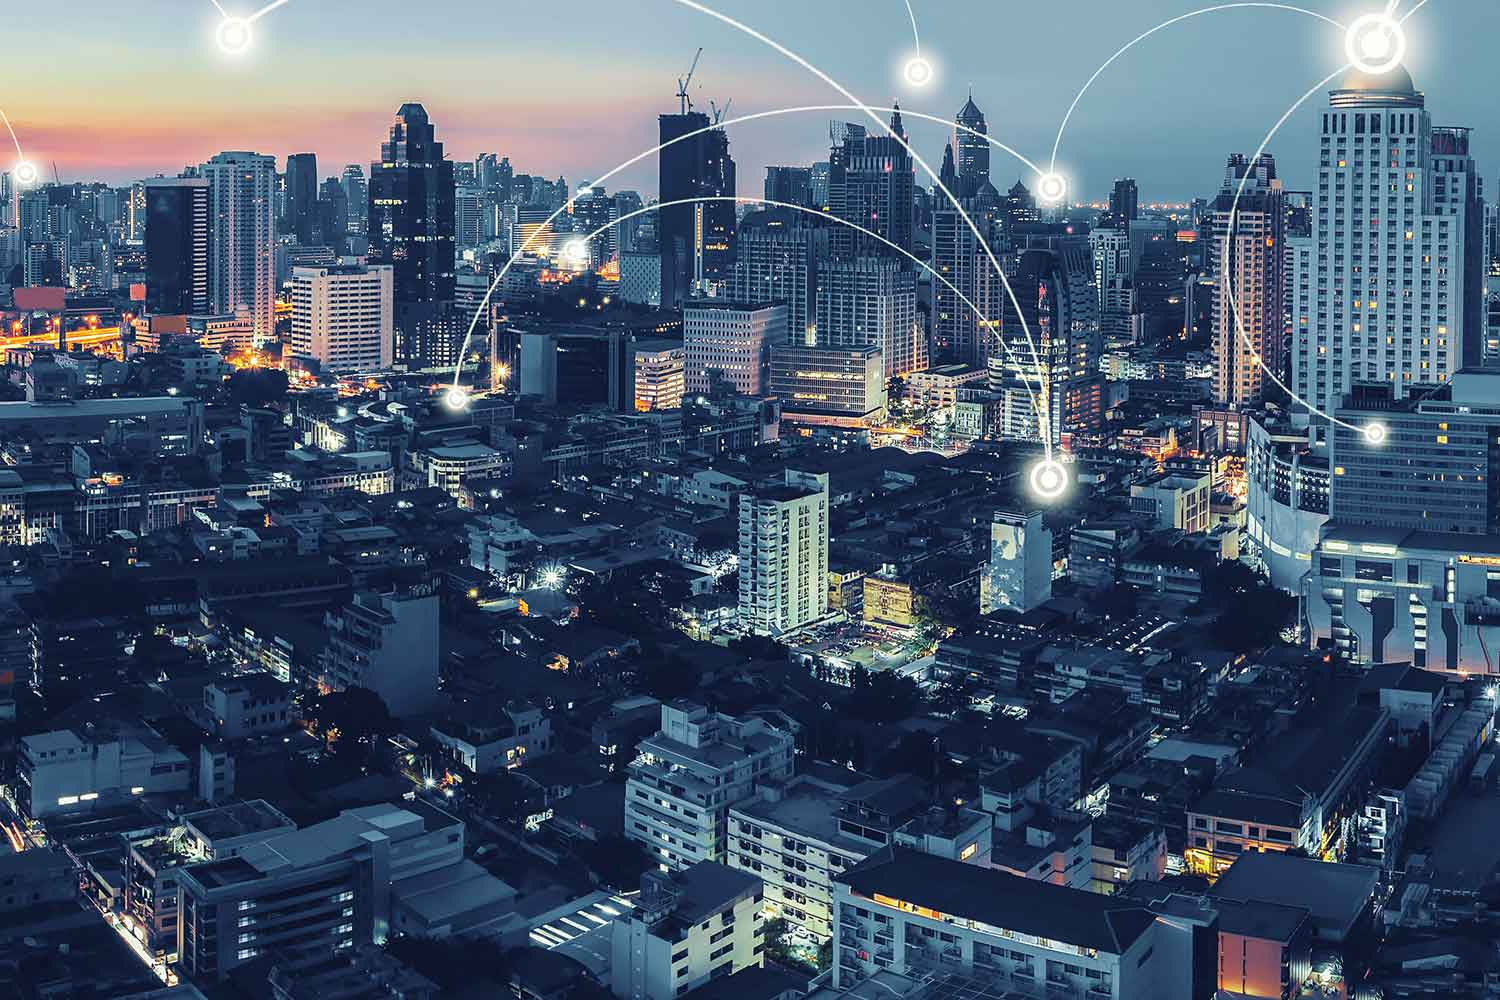 Internet of things connections